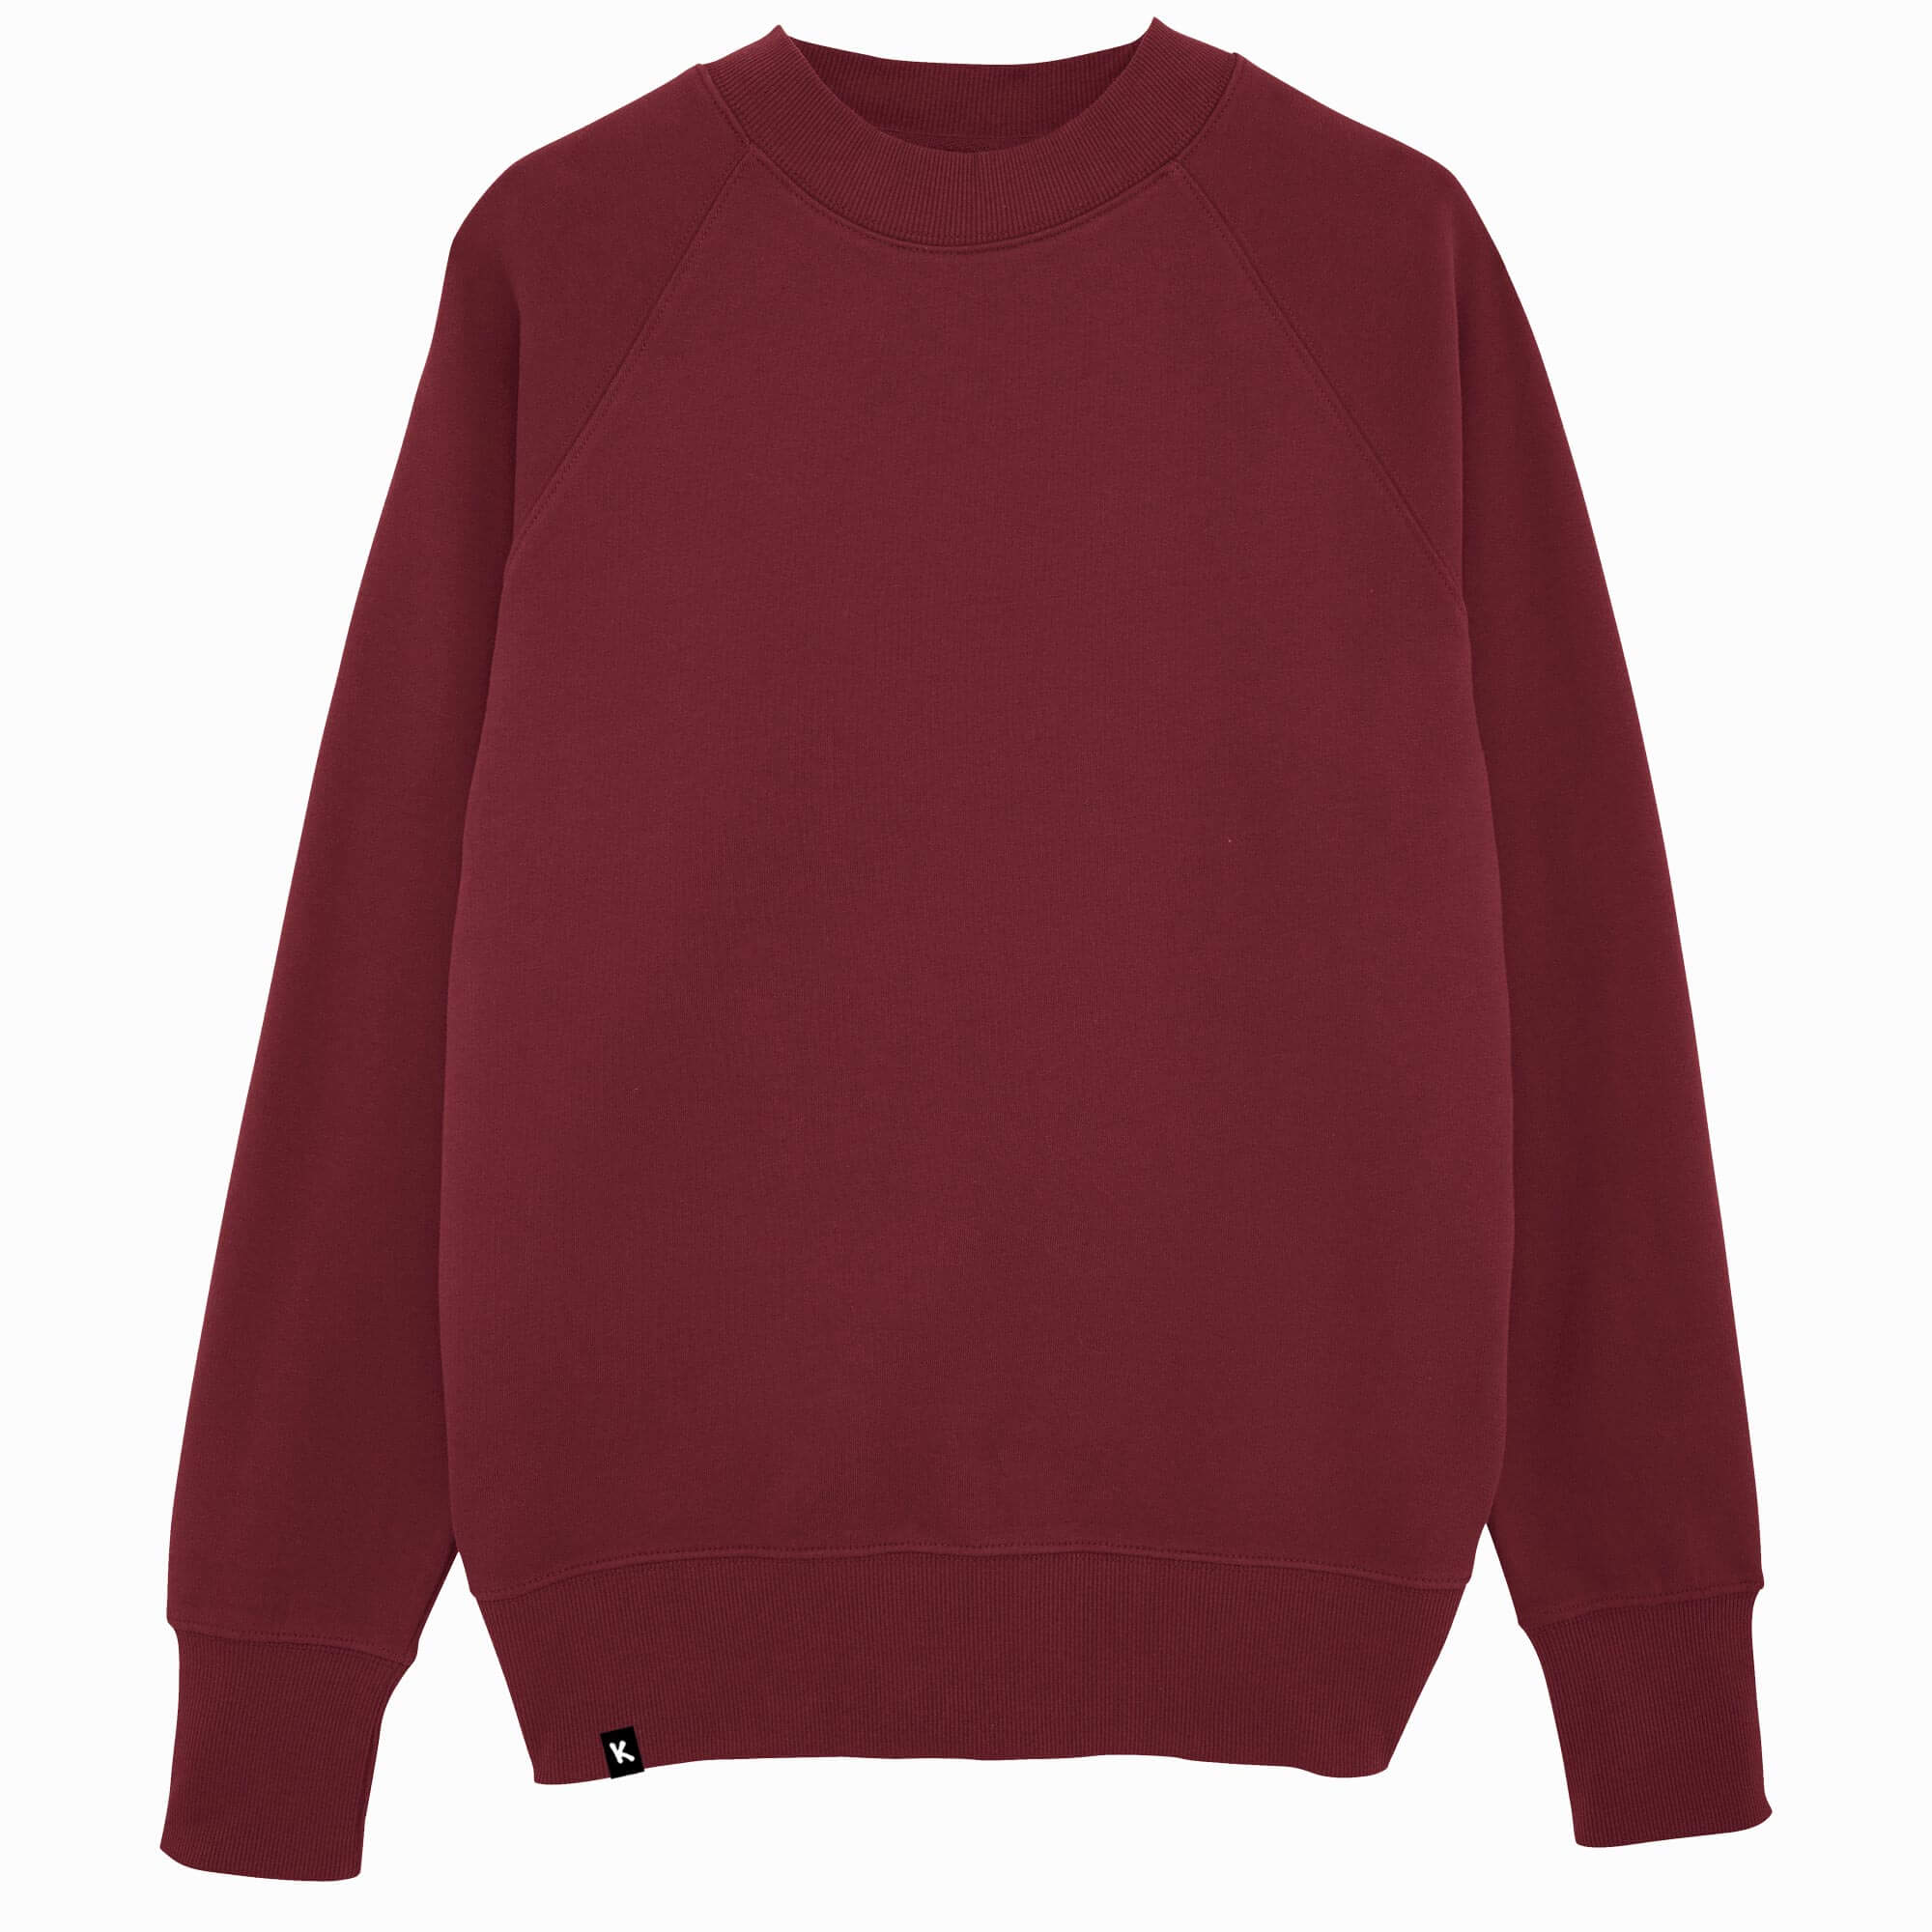 Krush Crewneck burgundy